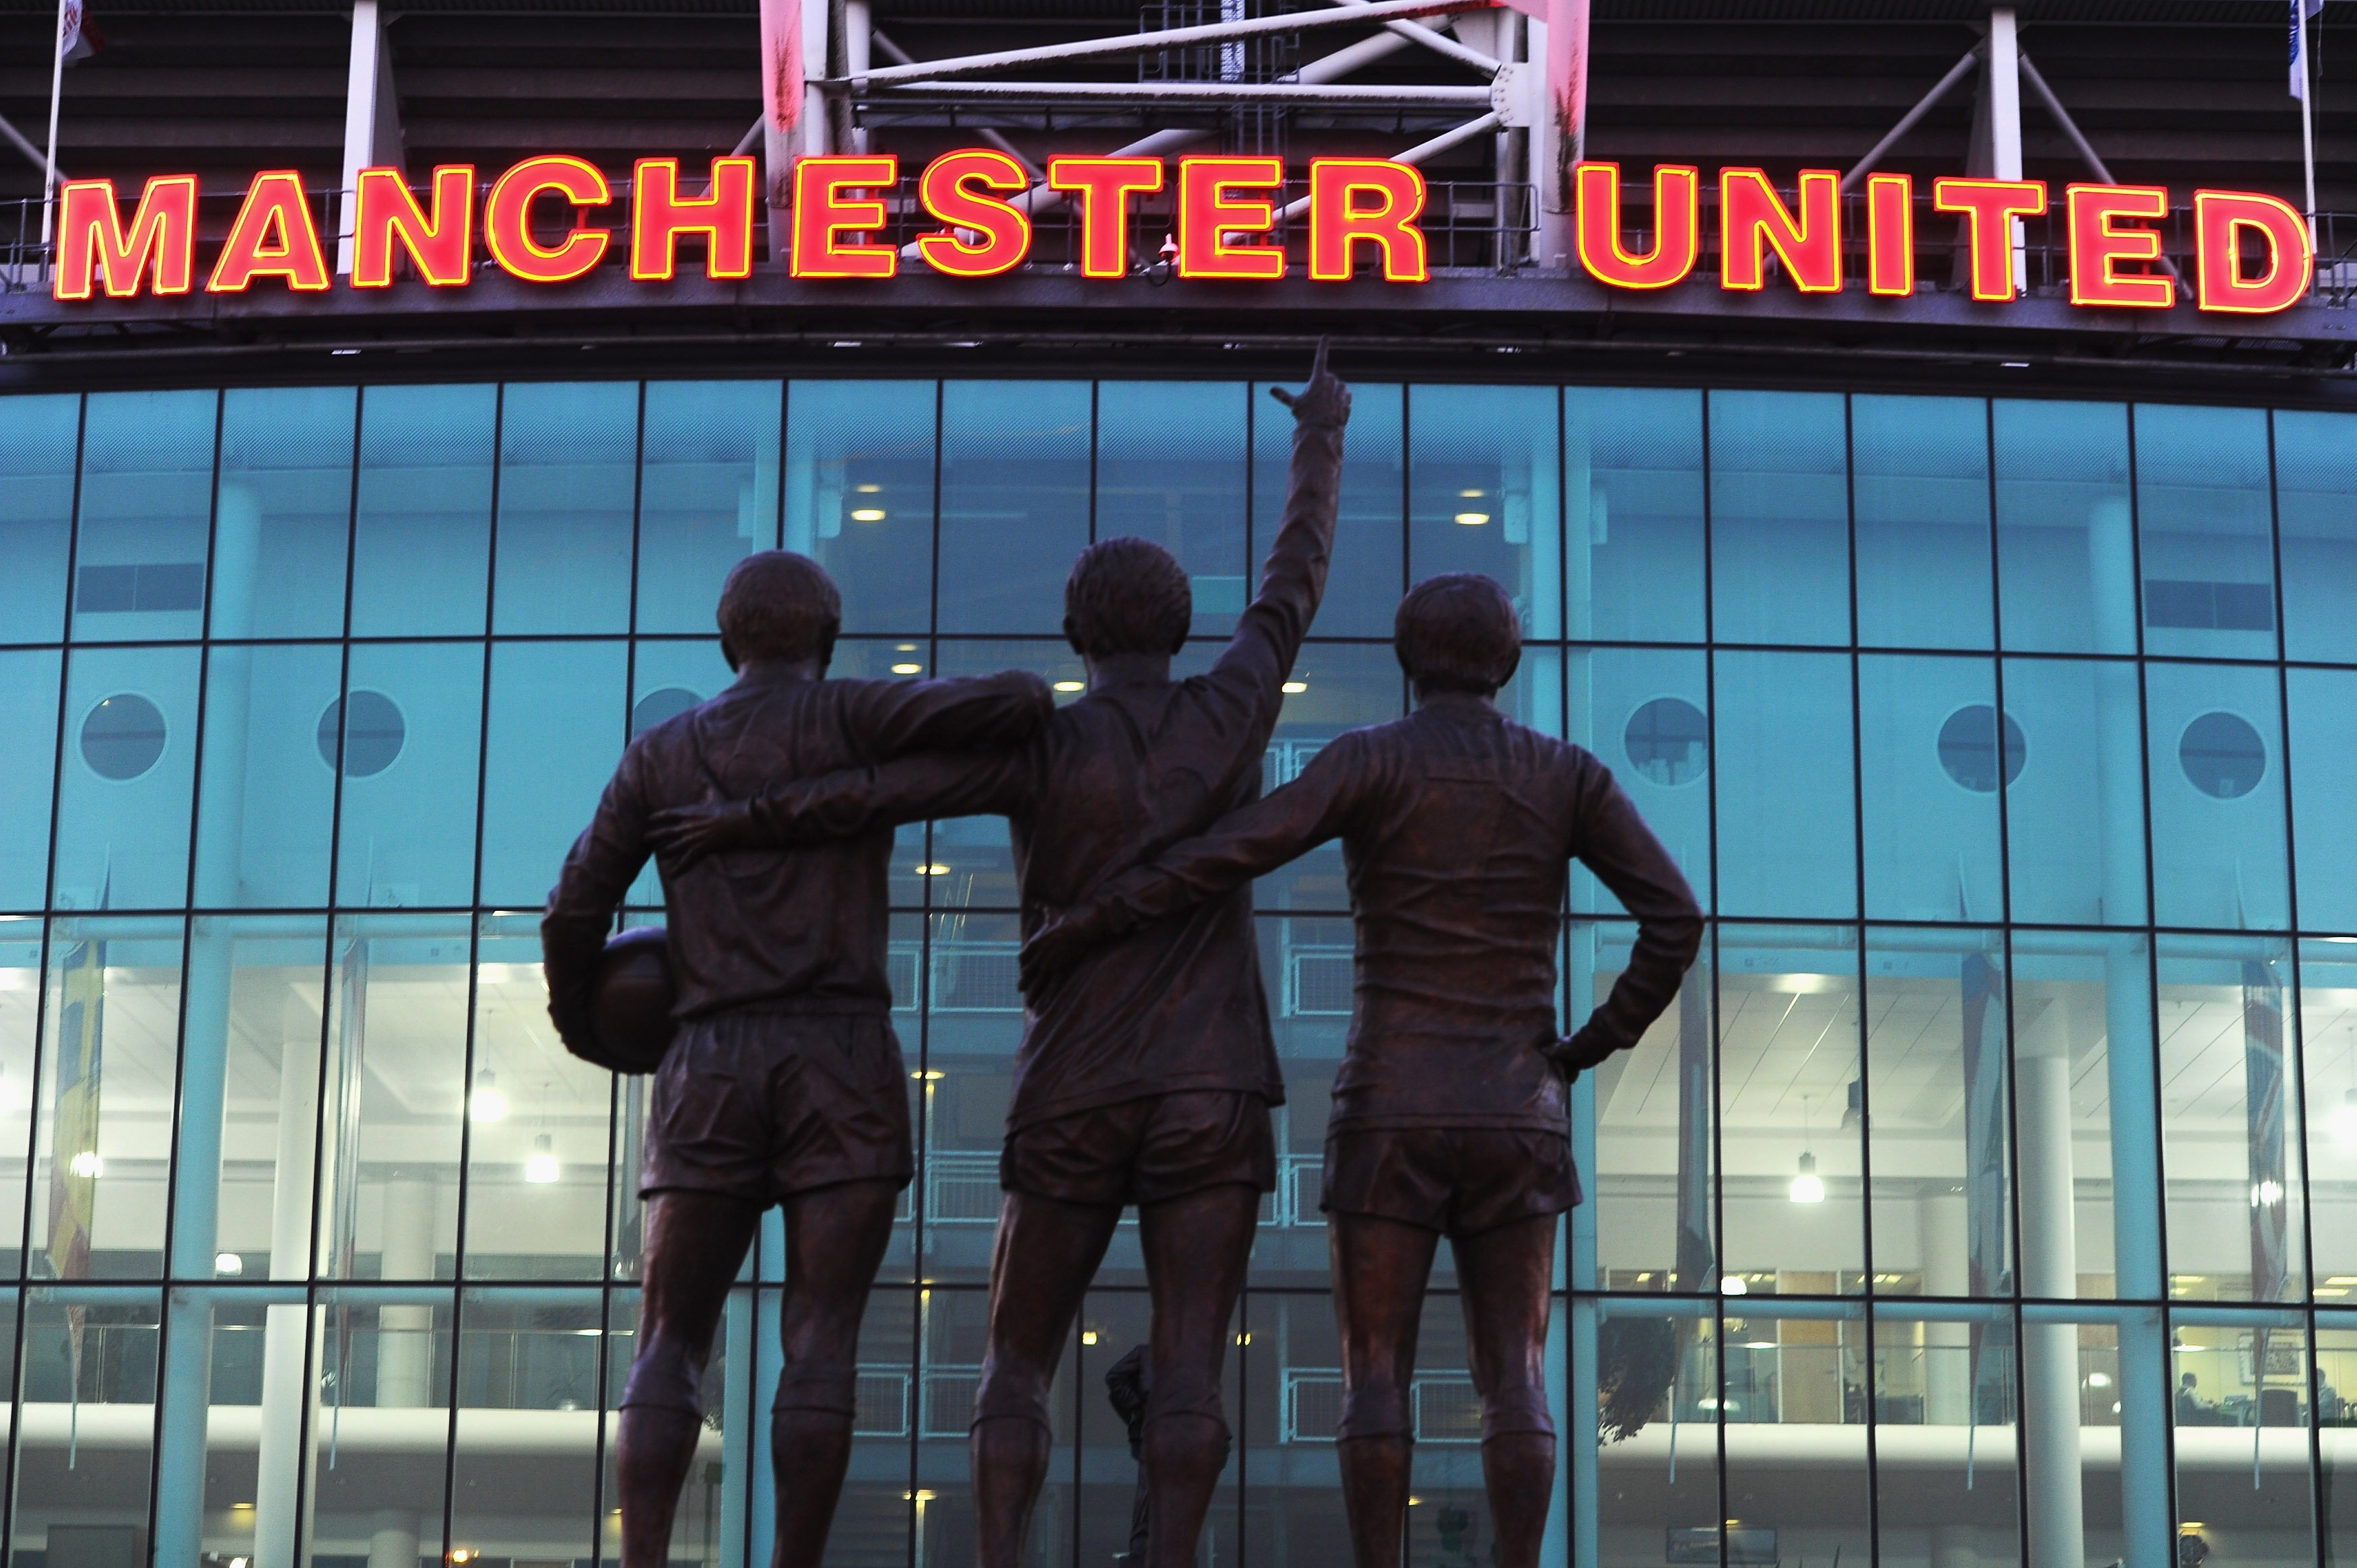 Manchester United debt increased by almost $181 million in 2019